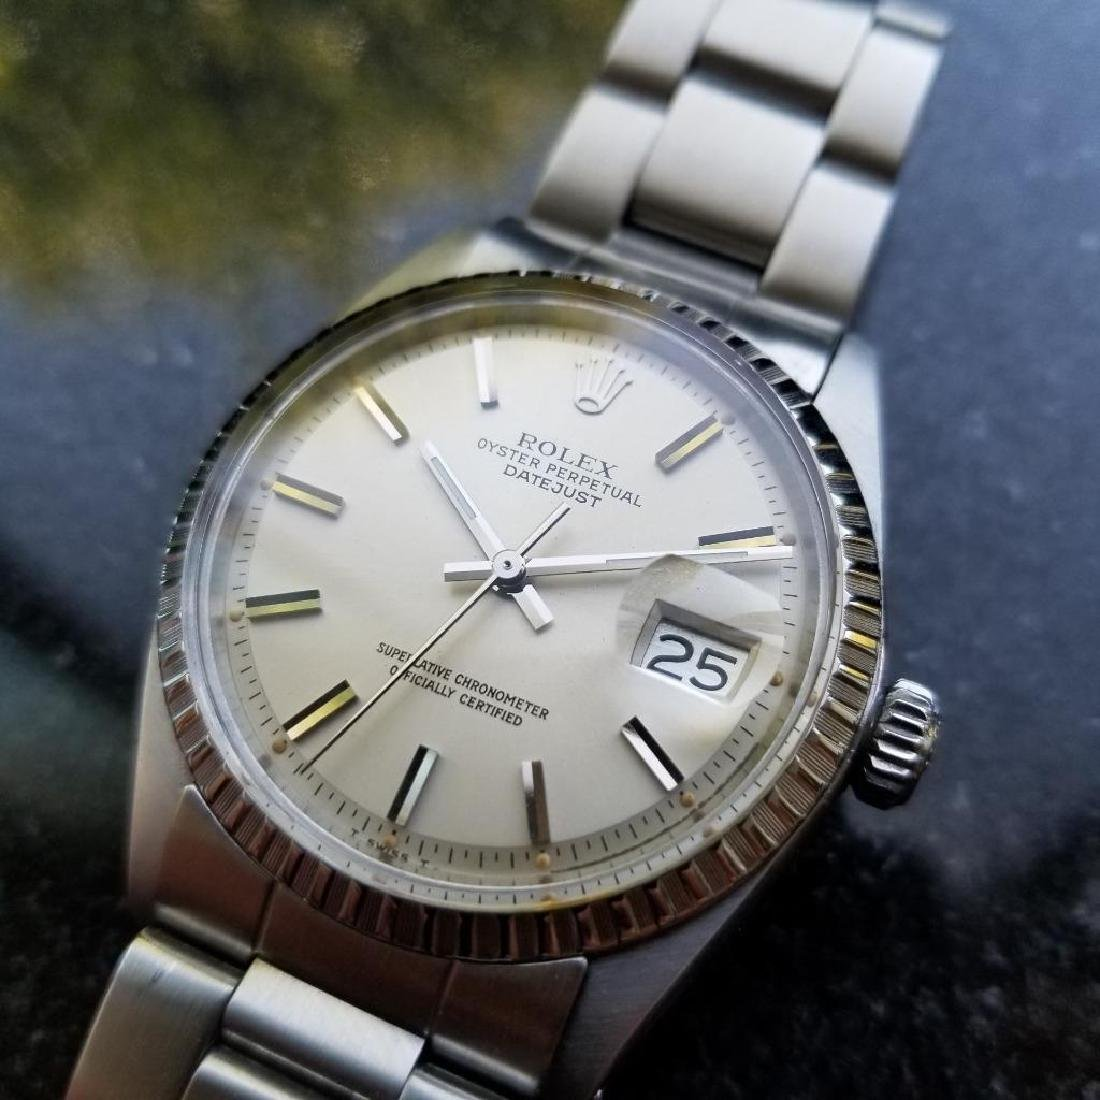 Rolex Oyster Perpetual 1603 Datejust Vintage 1977 Auto